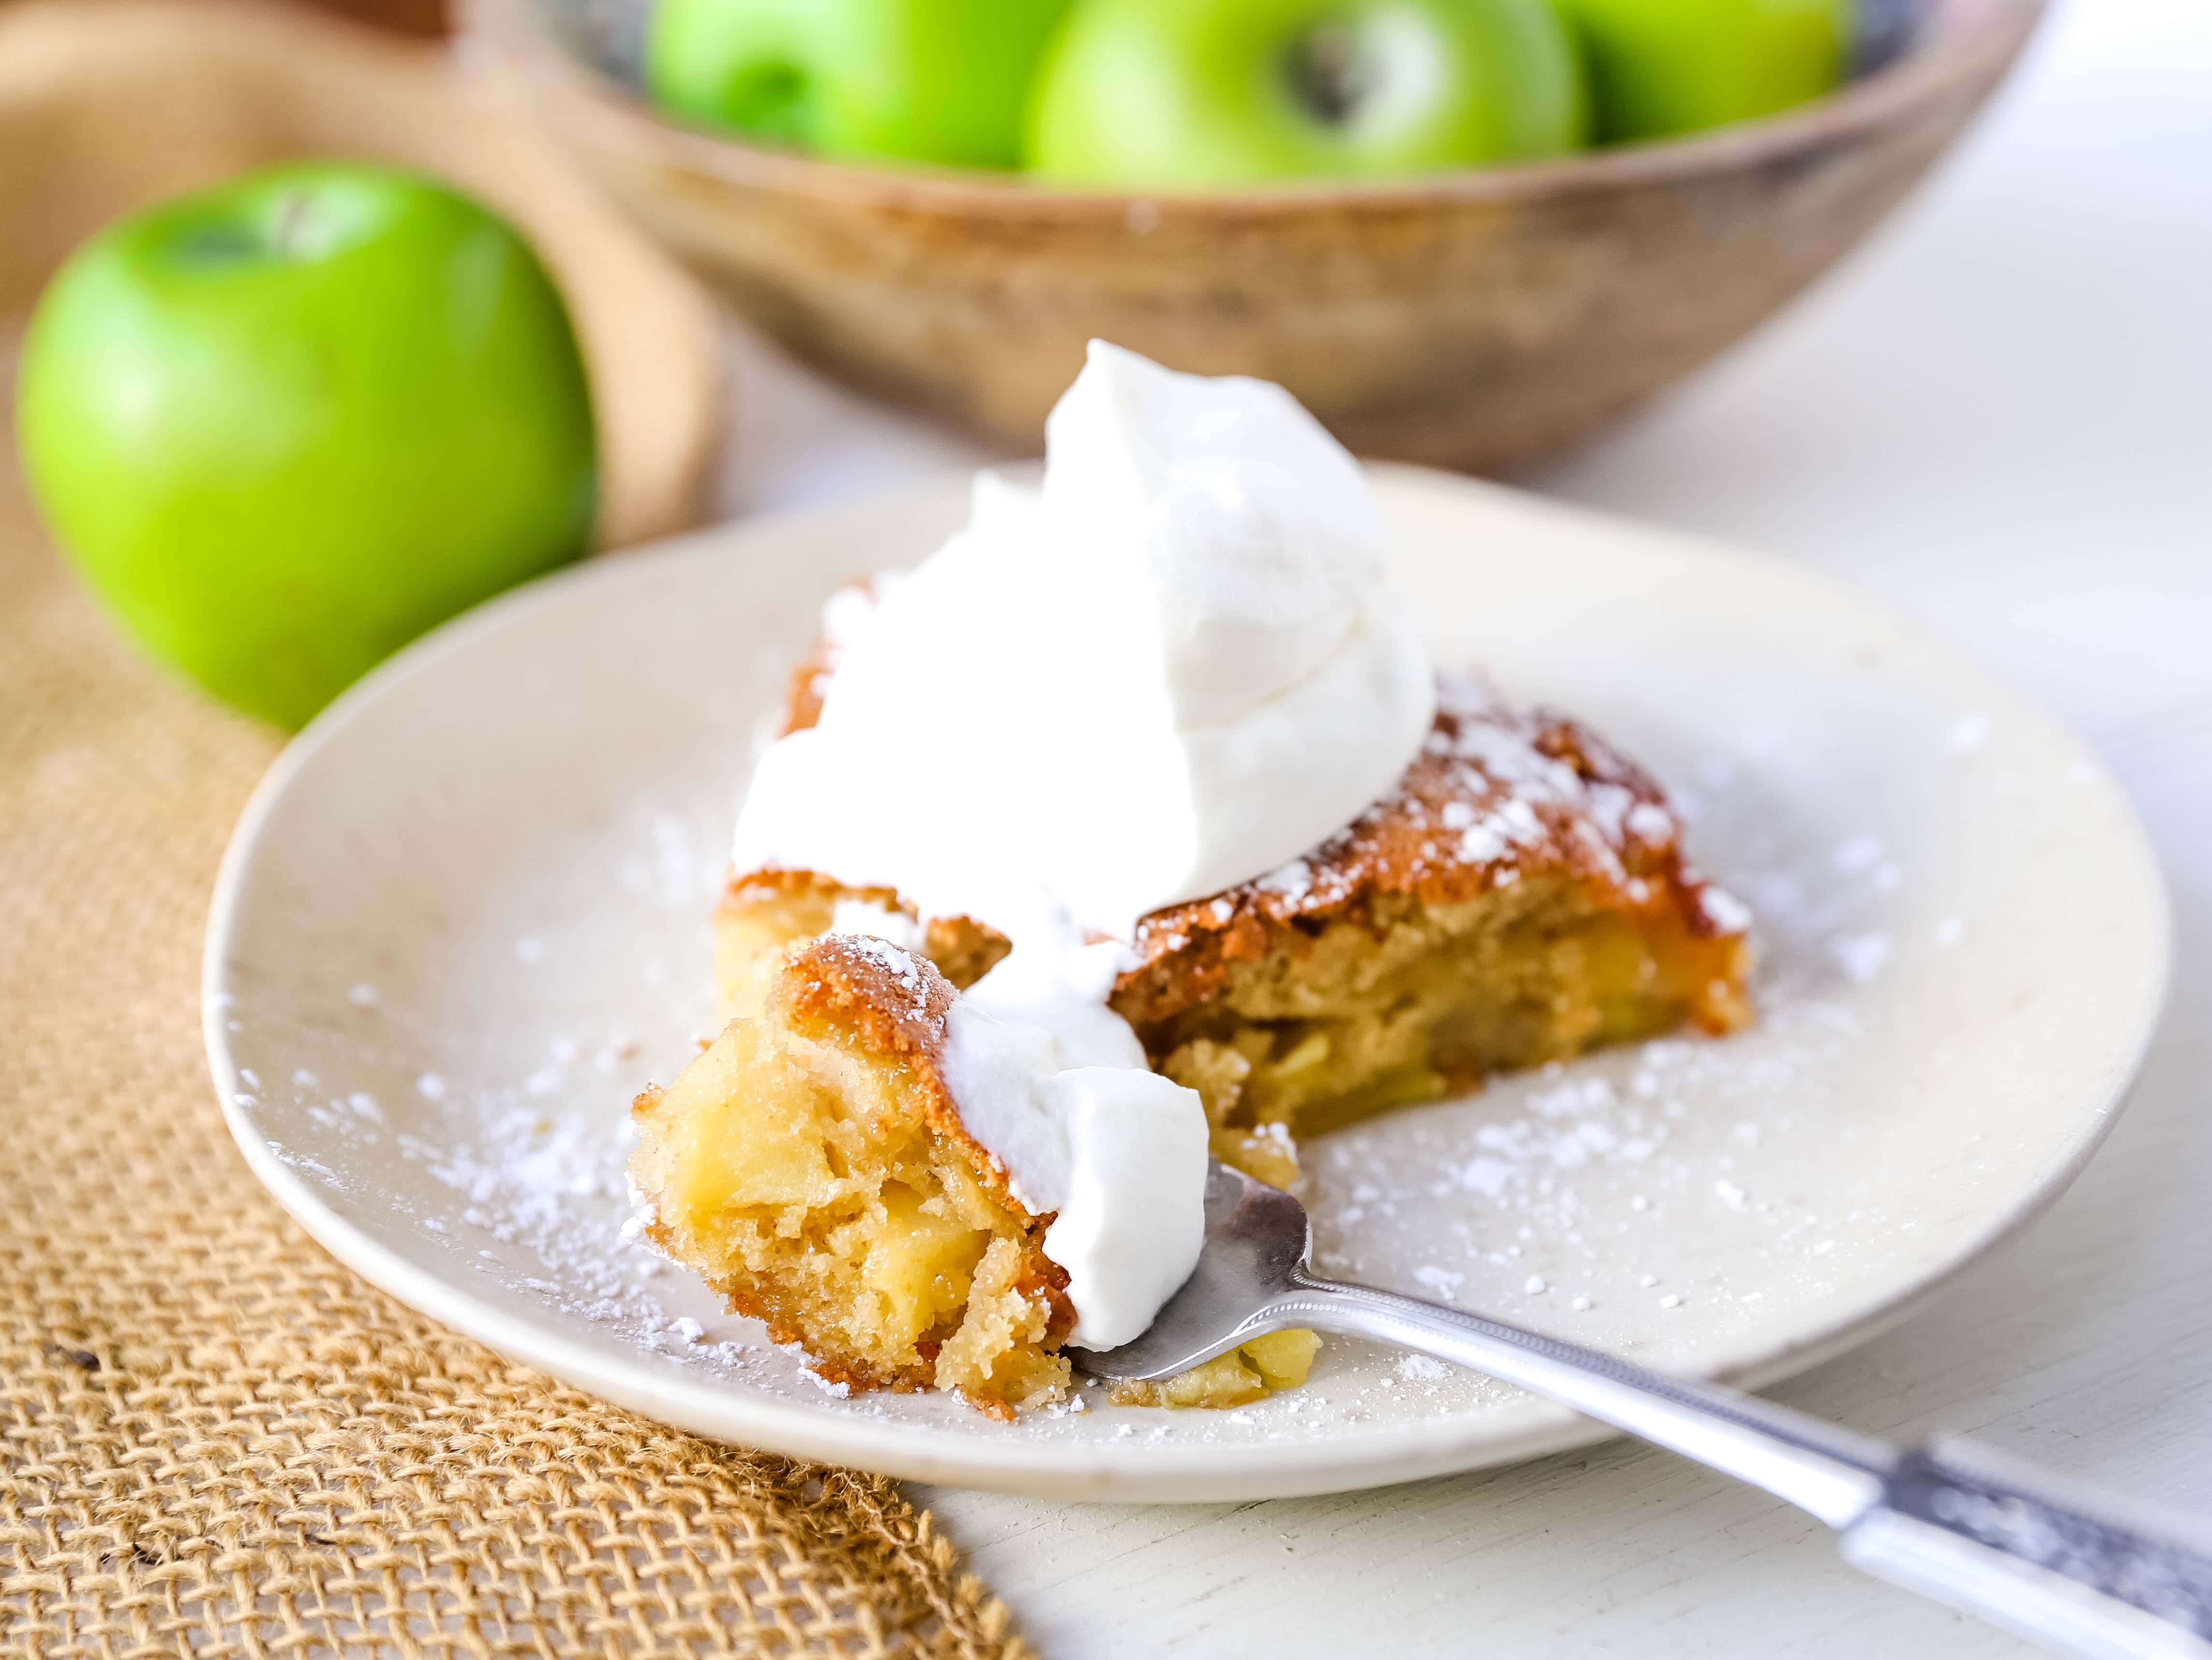 French Apple Cake A simple French buttery cake made with sweet apples and topped with freshly whipped cream. www.modernhoney.com #frenchapplecake #applecake #frenchcake #dessert #appledessert